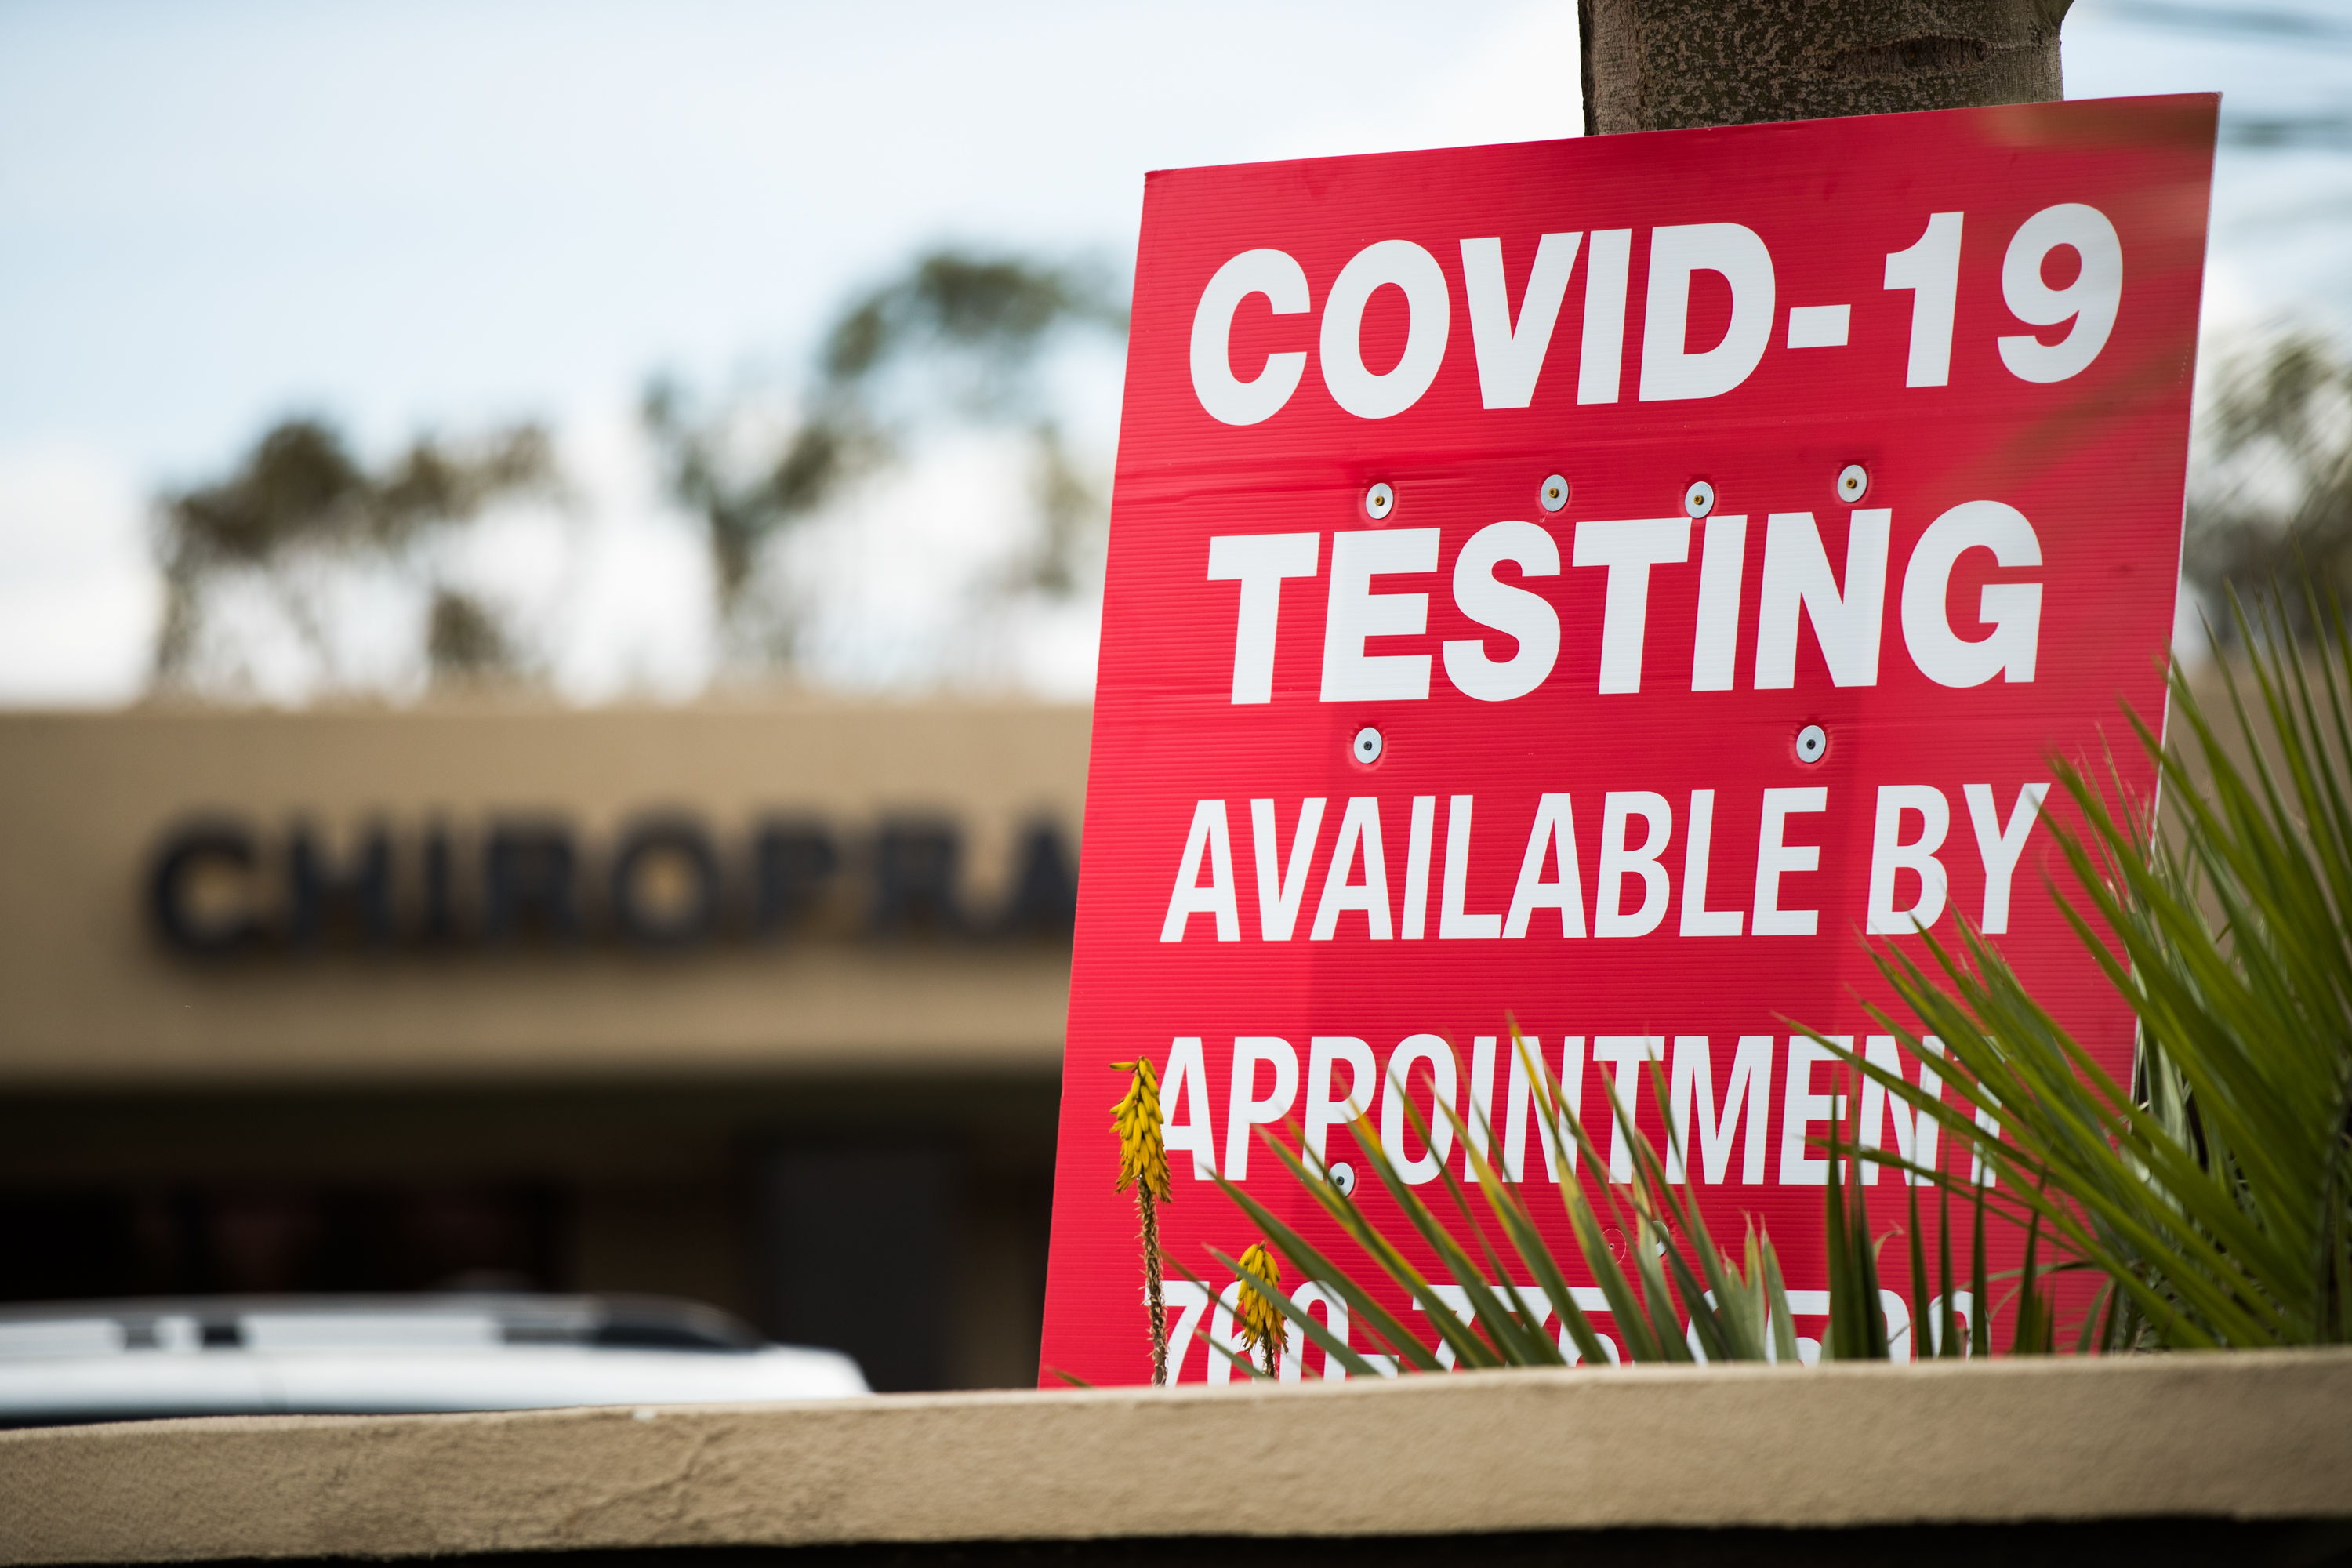 A sign about Covid-19 testing is seen in Indio, California, on April 9.